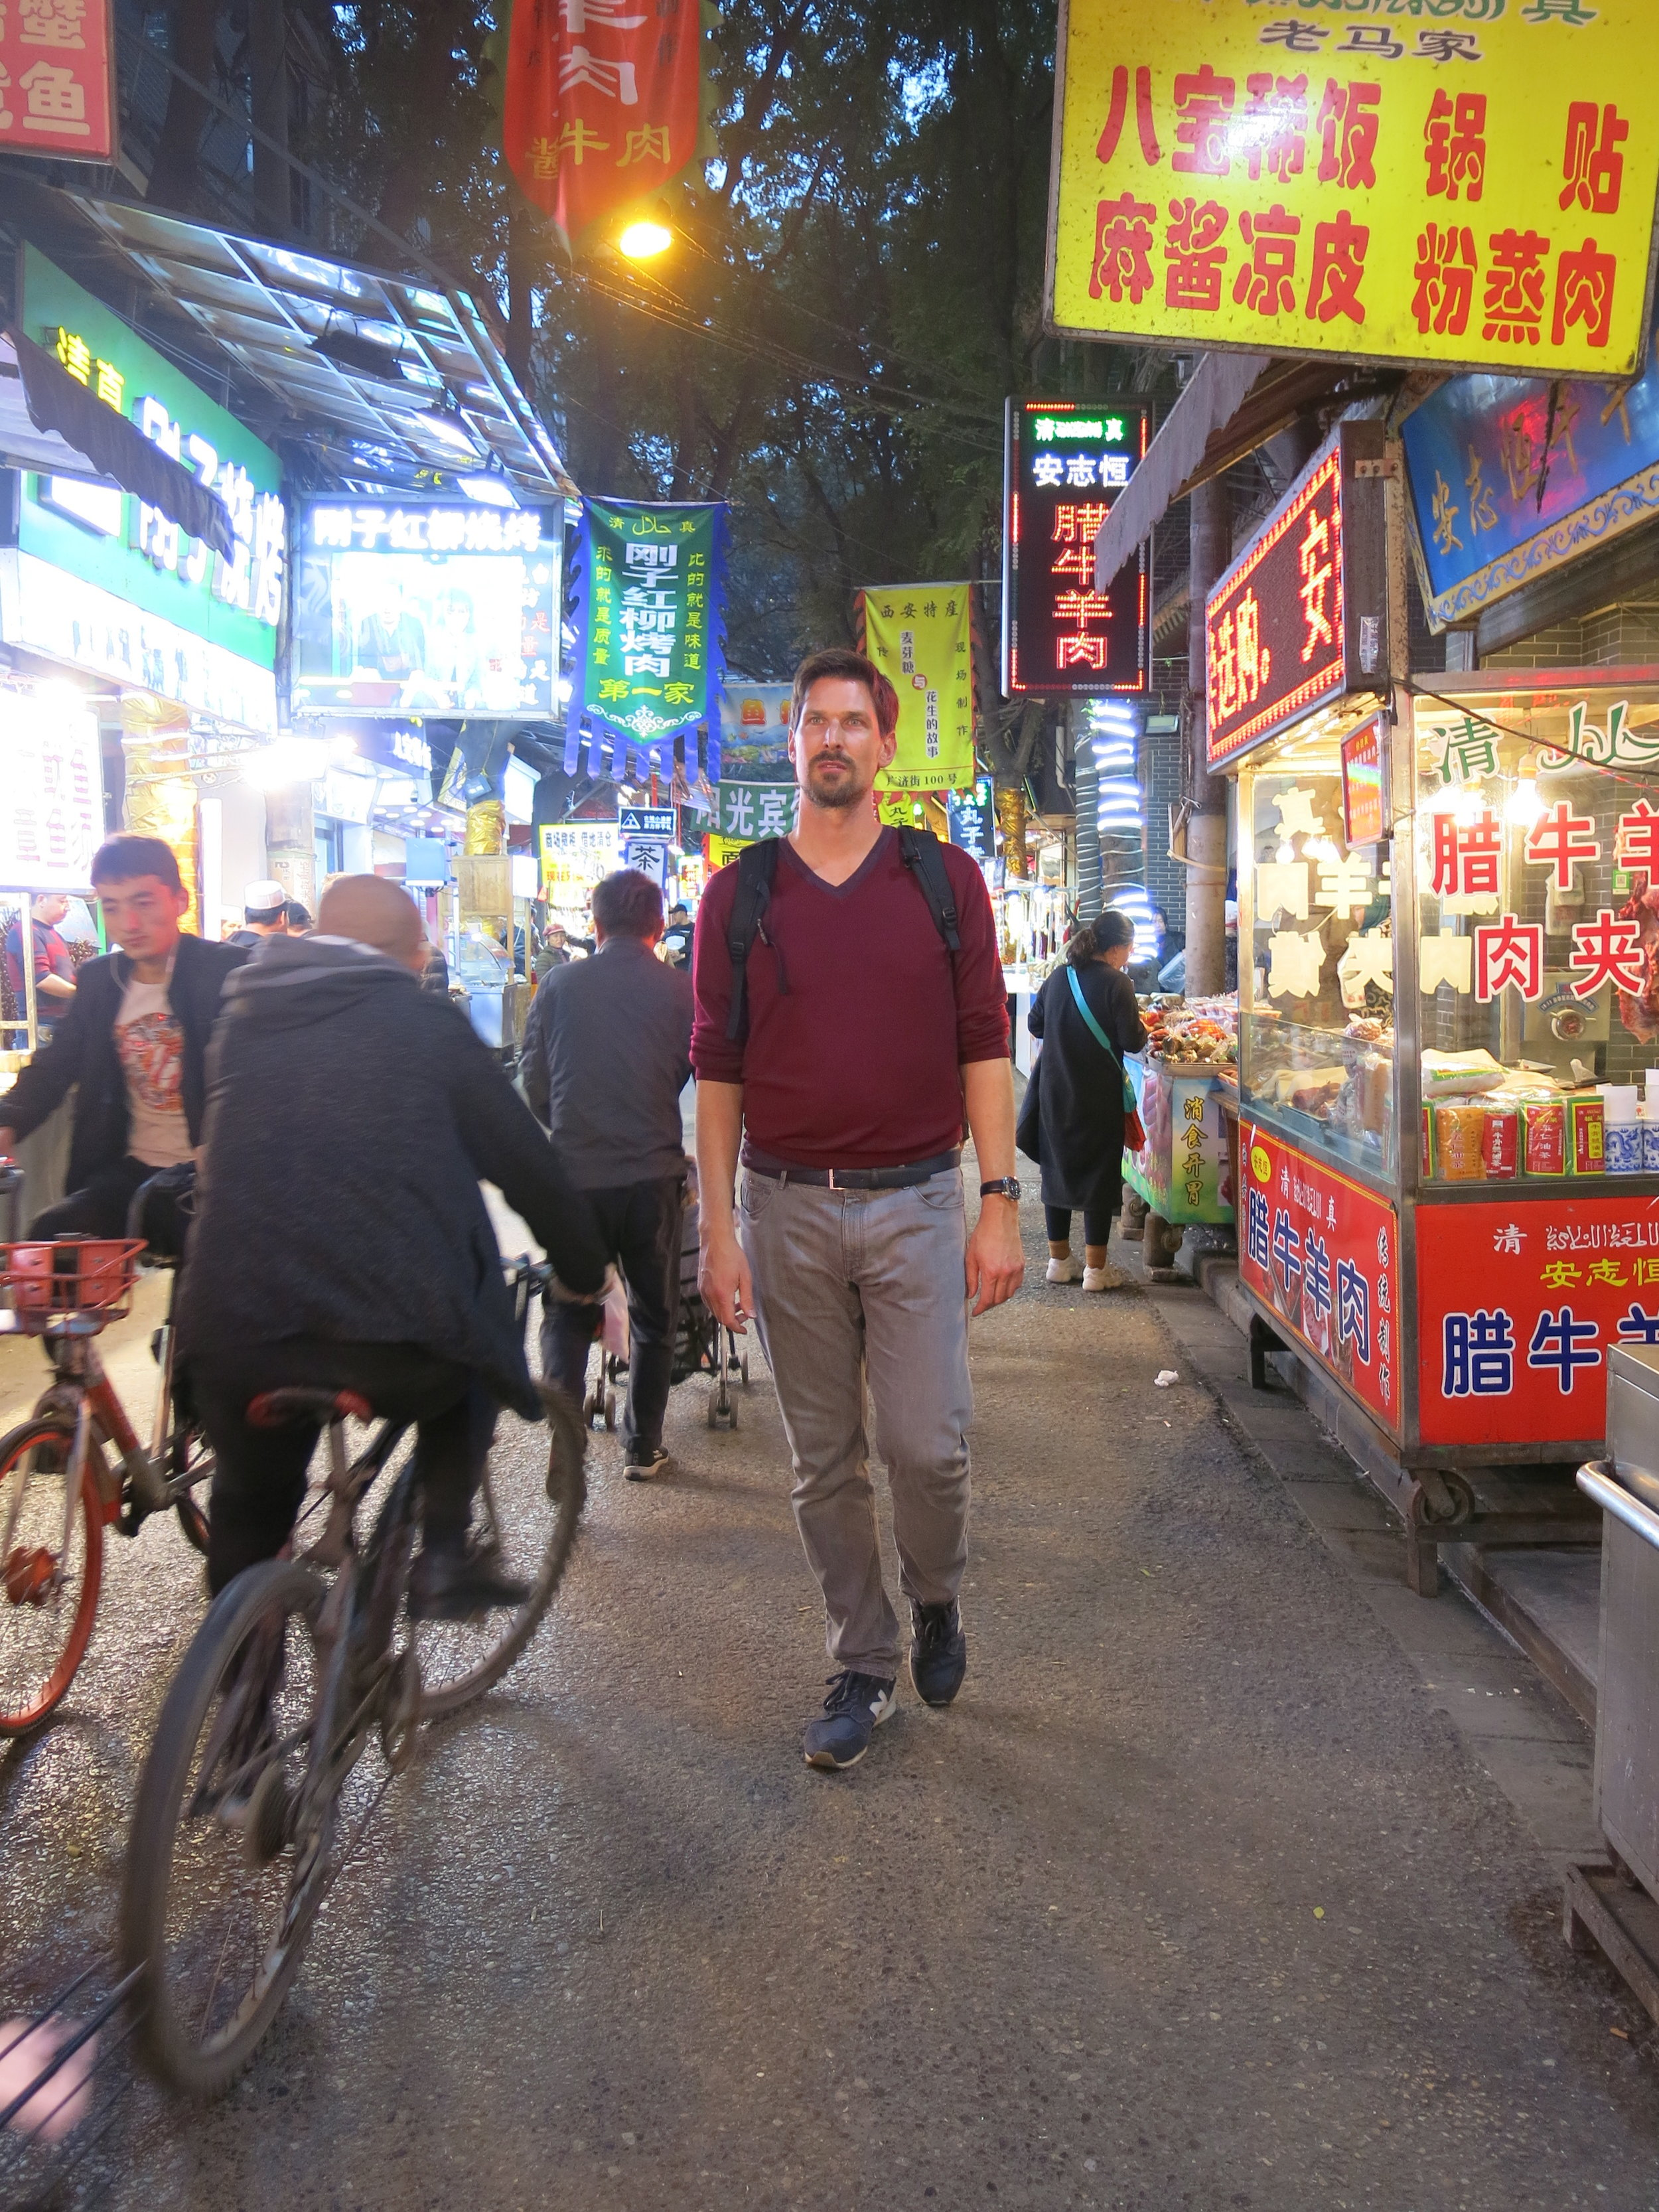 Wandering in the narrow streets of the Muslim Quarter in Xi'an